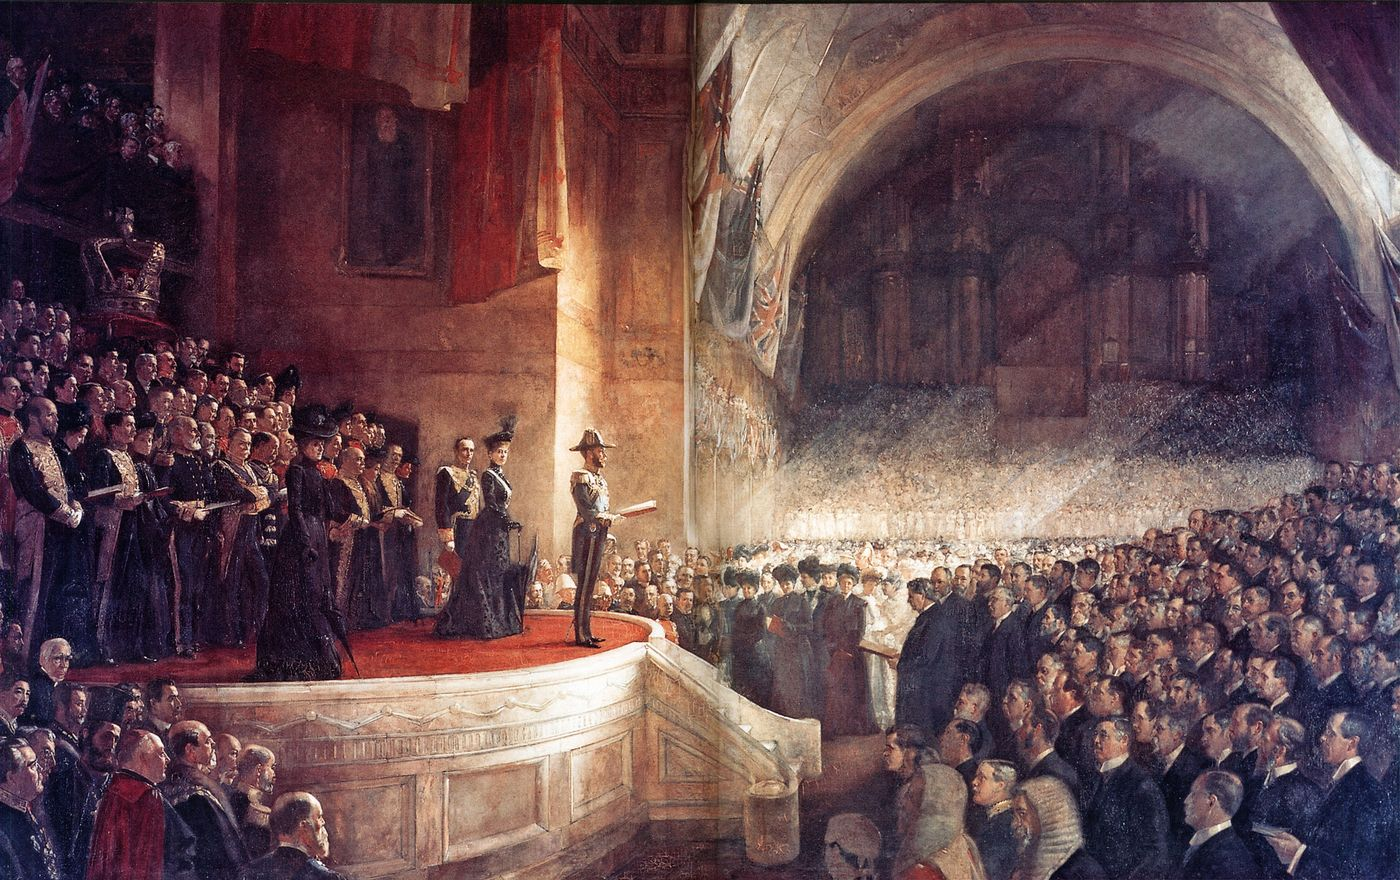 OPENING OF THE FIRST PARLIAMENT